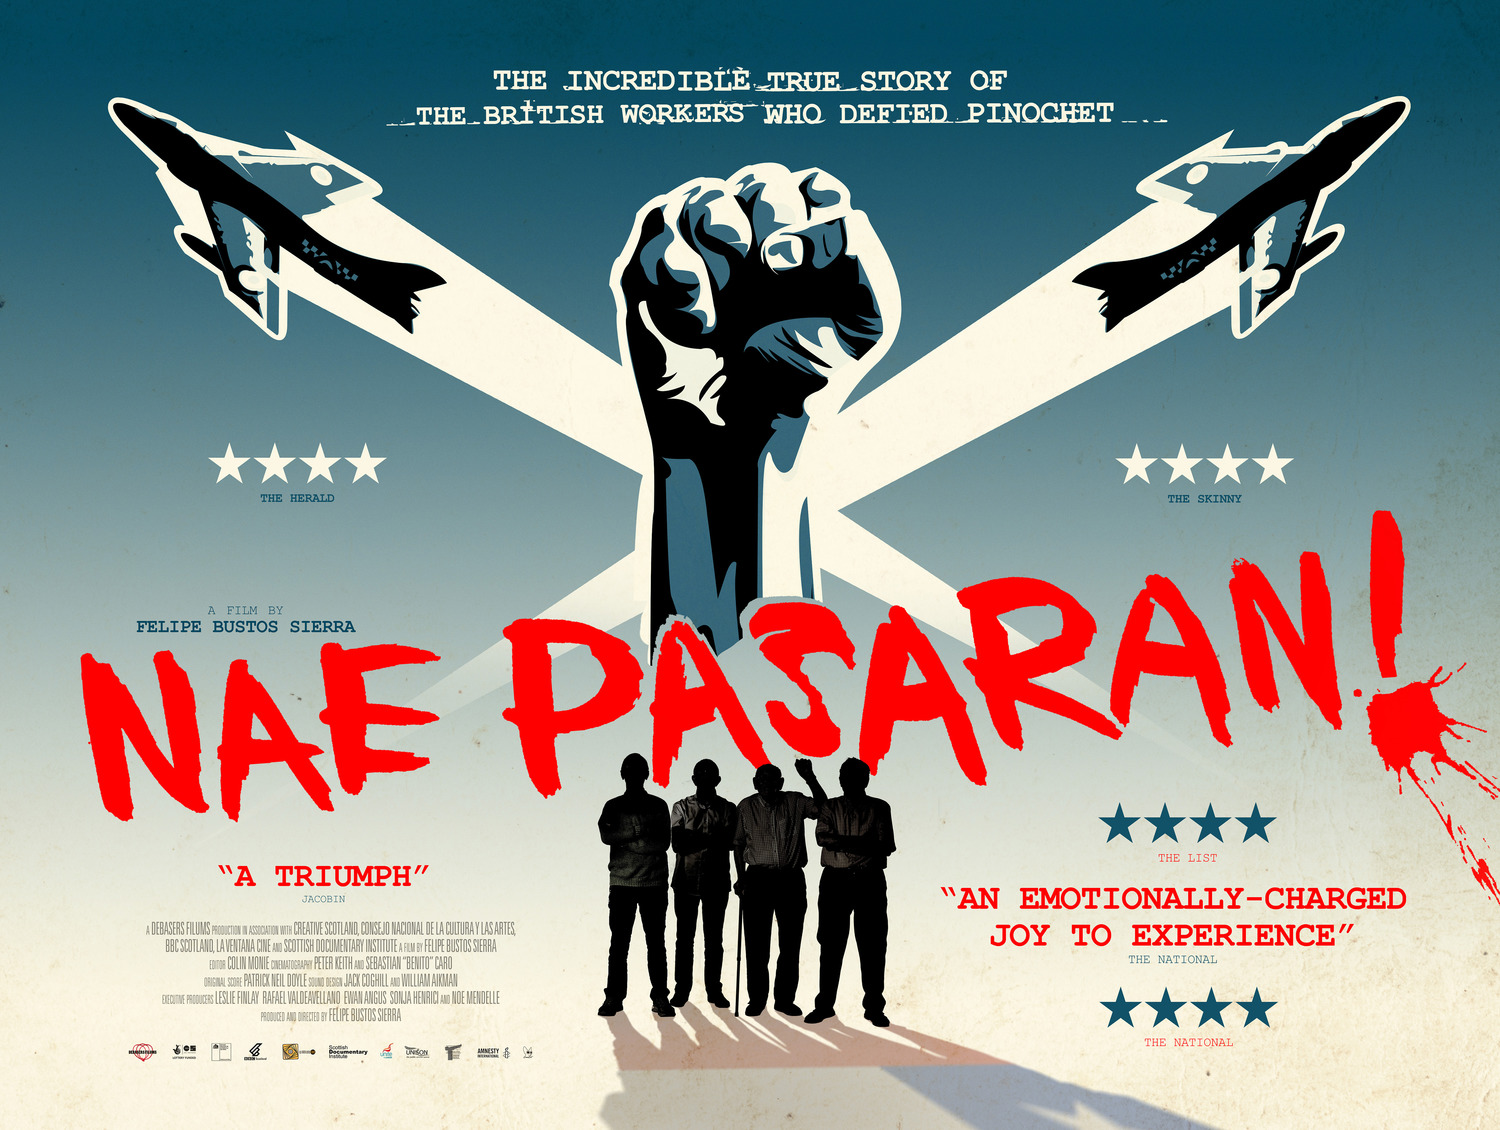 Extra Large Movie Poster Image for Nae Pasaran